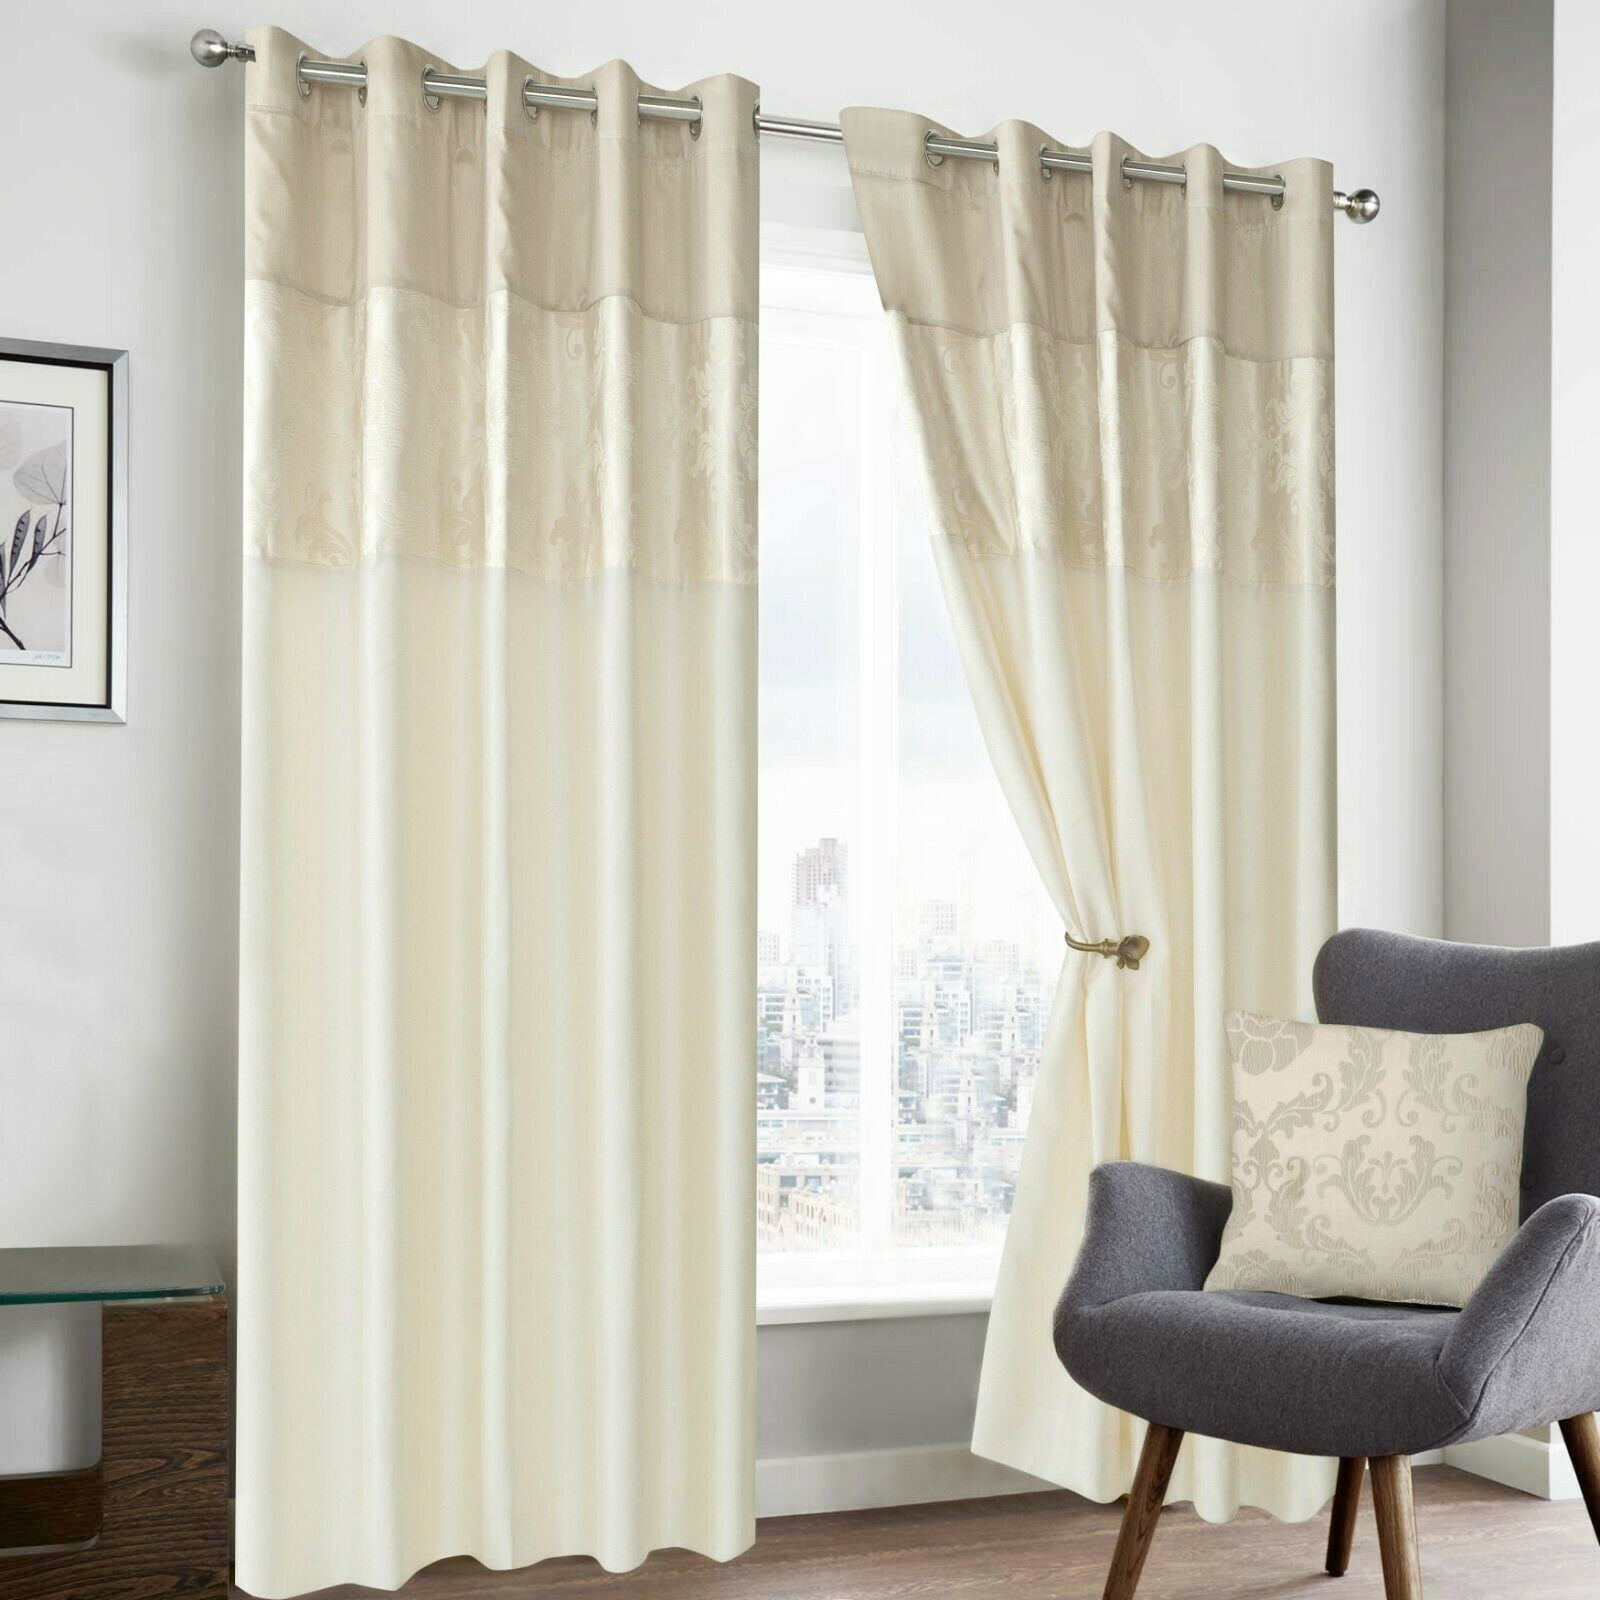 Cream beige colour modern floral damask ringtop eyelet Beige curtains